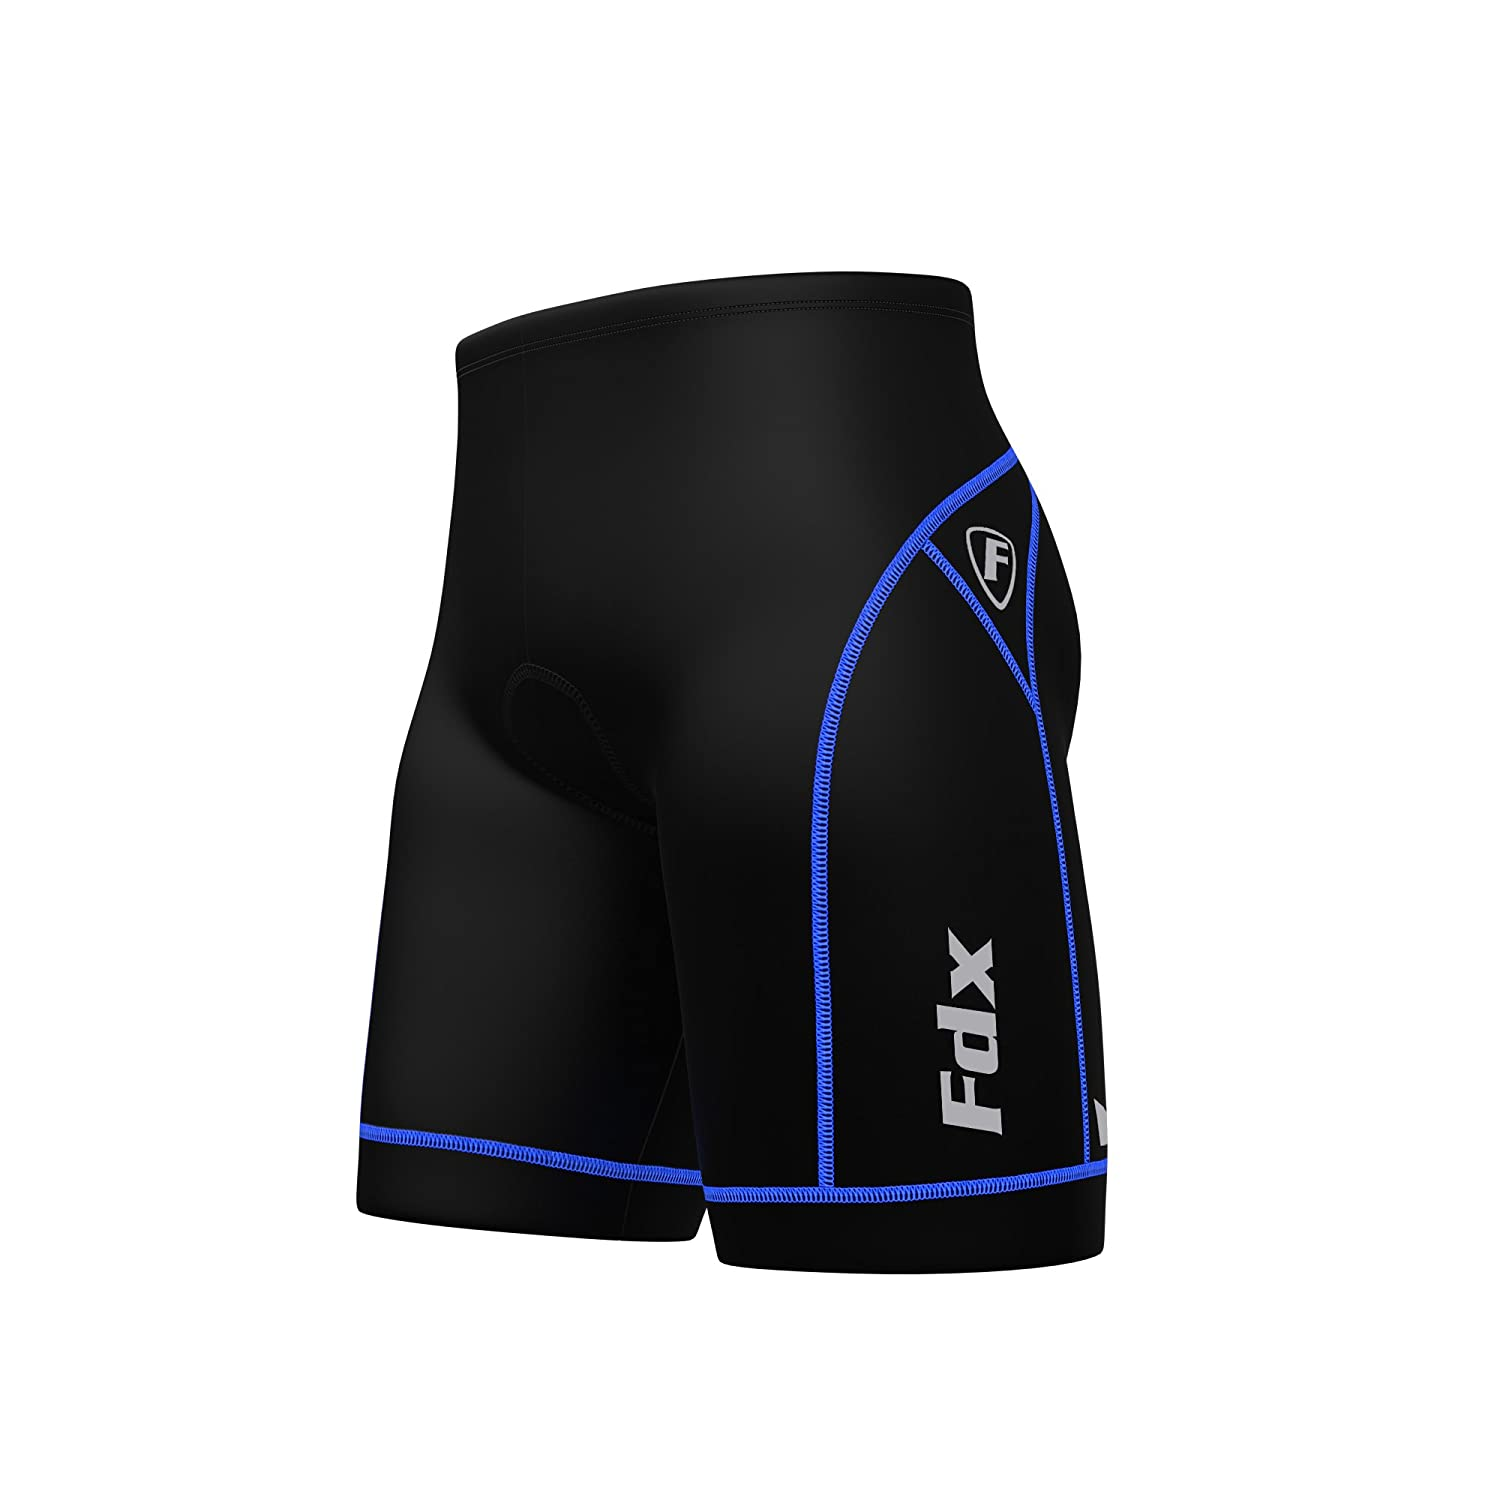 FDX Uomo qualità – Pantaloni da Ciclismo Anti BAC Imbottitura Outdoor Cycle Gear Tight Pantaloncini FDX-990